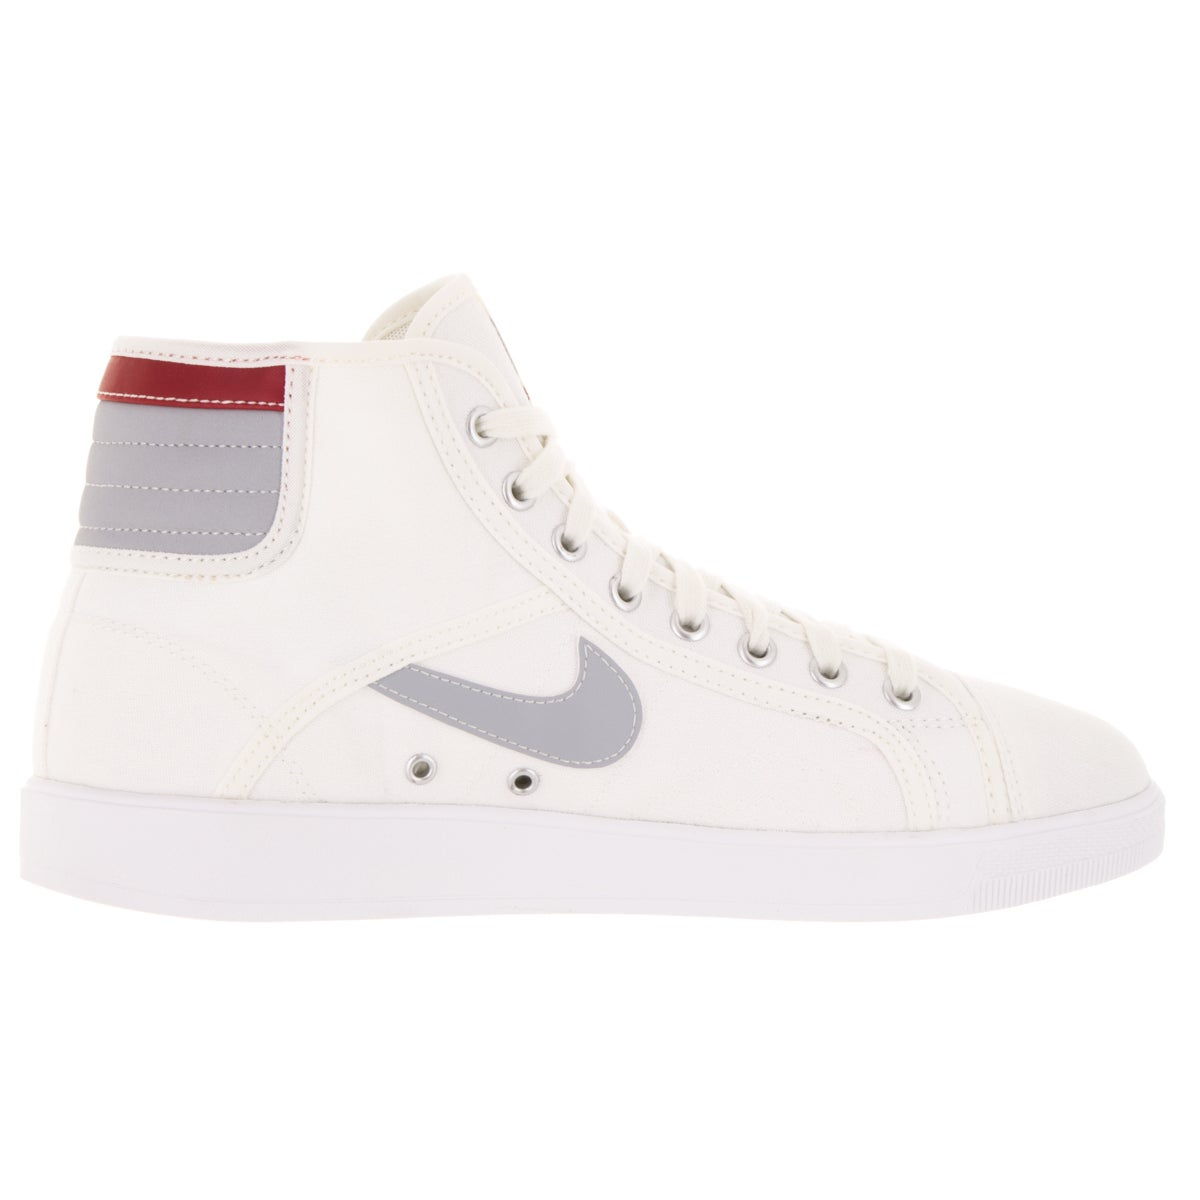 promo code 4a6d6 bf5e3 Shop Nike Jordan Men s Air Jordan Skyhigh Og Sail Gym Red Wolf Grey Casual  Shoe - Free Shipping Today - Overstock - 12318231